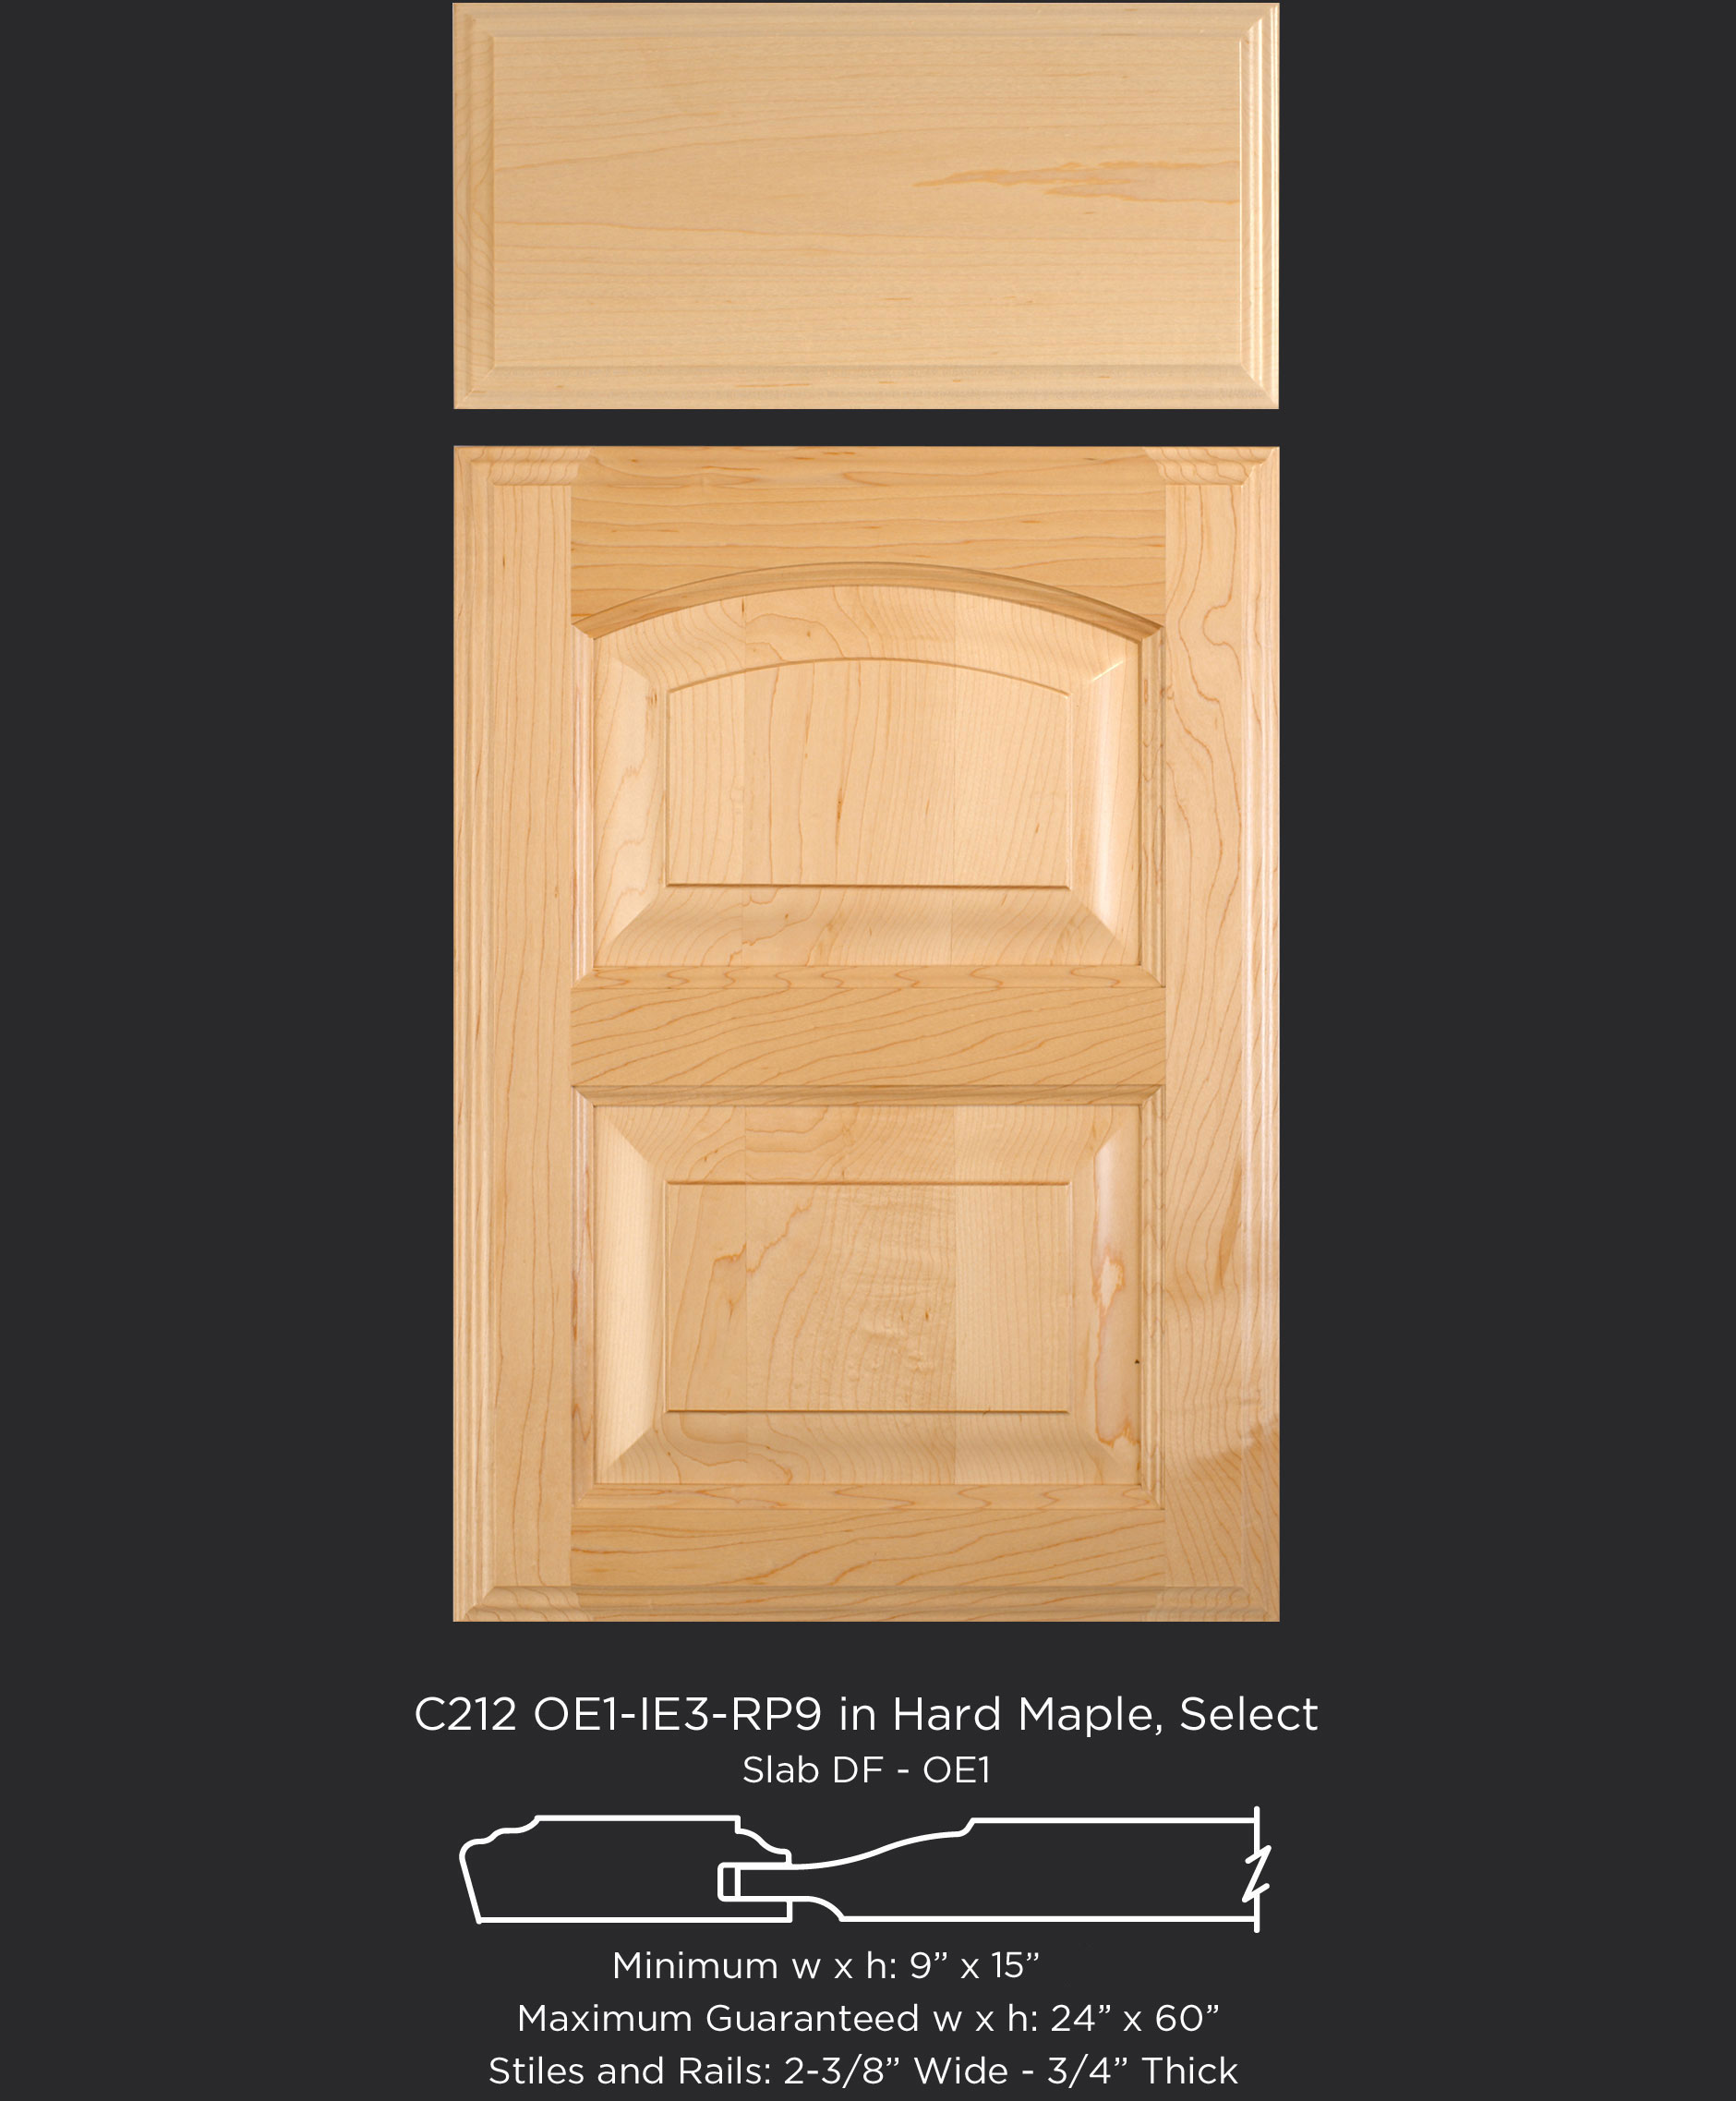 Cope and Stick Cabinet Door C212 OE1-IE3-RP9 in Hard Maple, Select and Slab Drawer Front with OE1